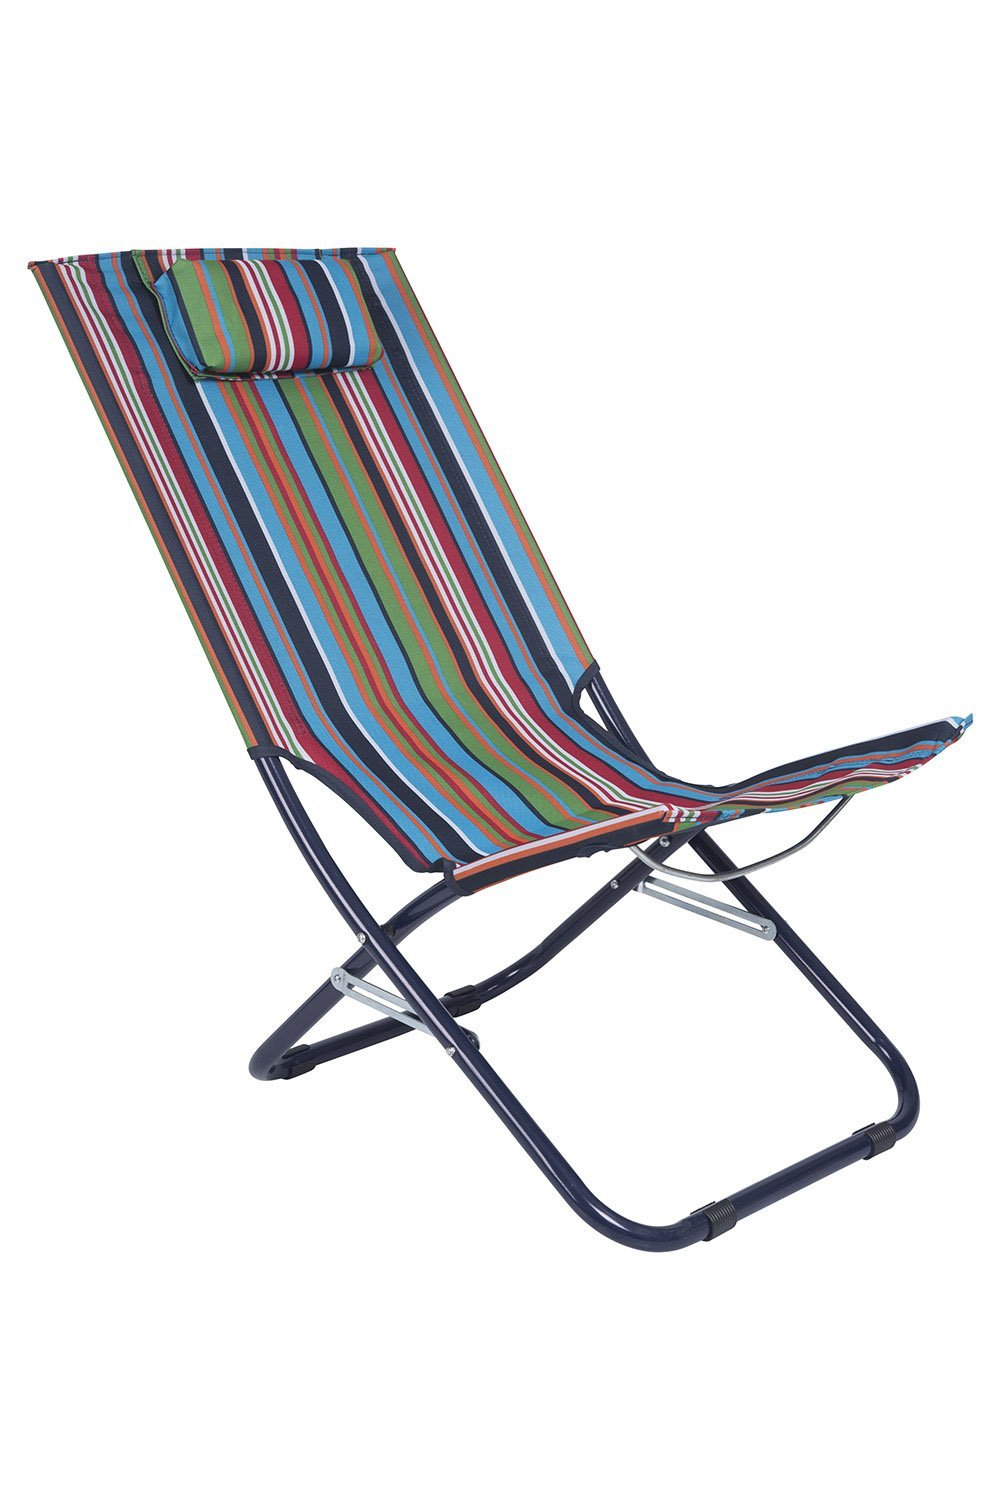 Mountain Warehouse Patterned Lounger Folding Chair with Head Padding to Favour Relax - Durable and Ideal for Camping, Beach, and Garden Lounging - Easy to Fold Away